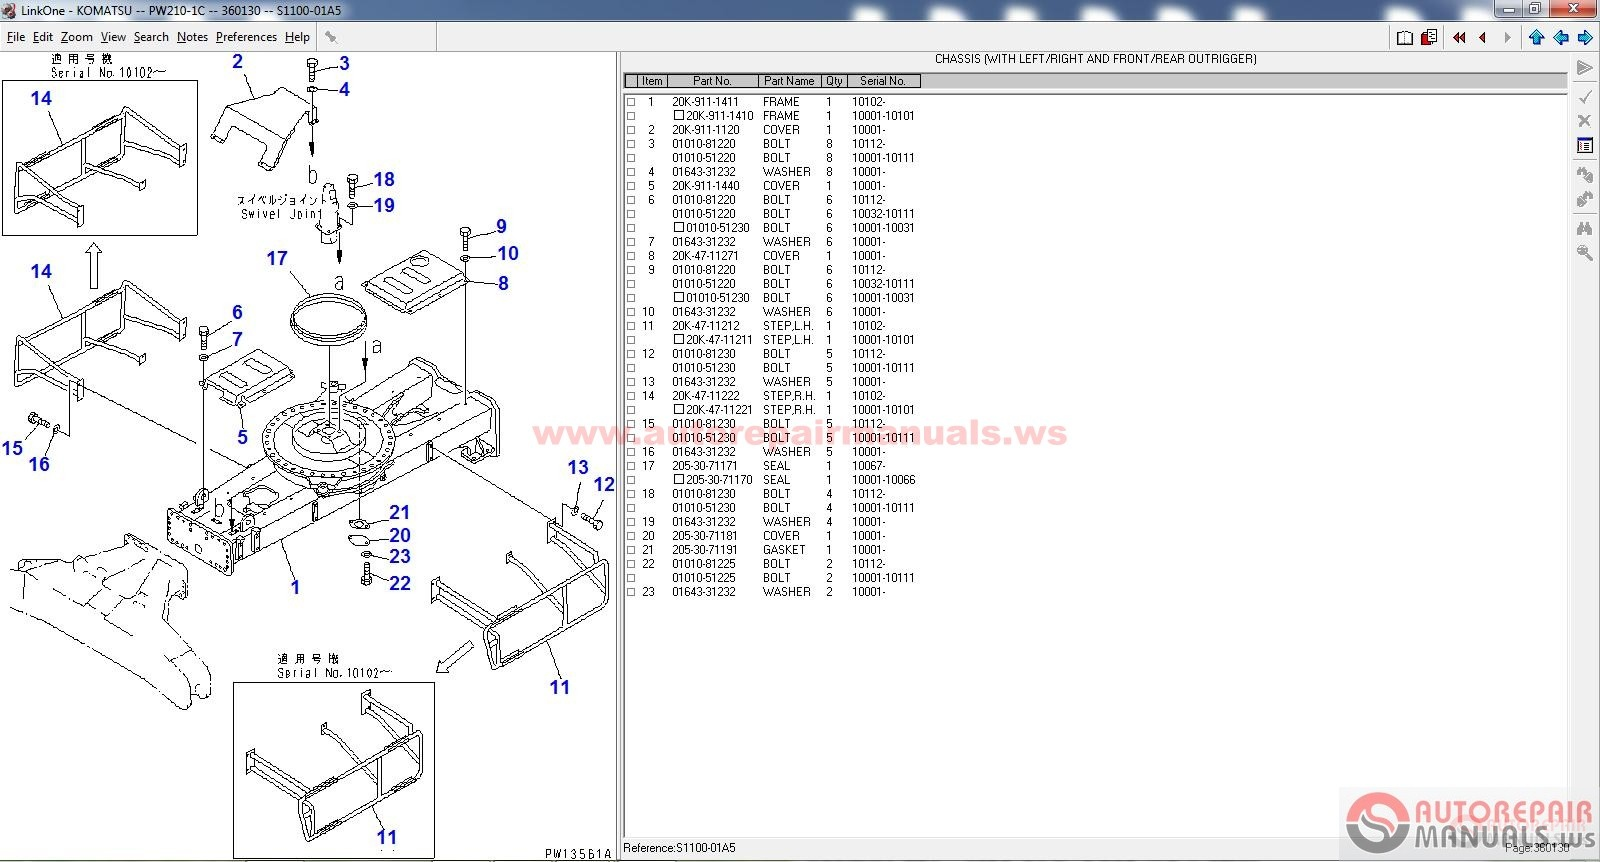 Komatsu Construction Parts Catalog 07